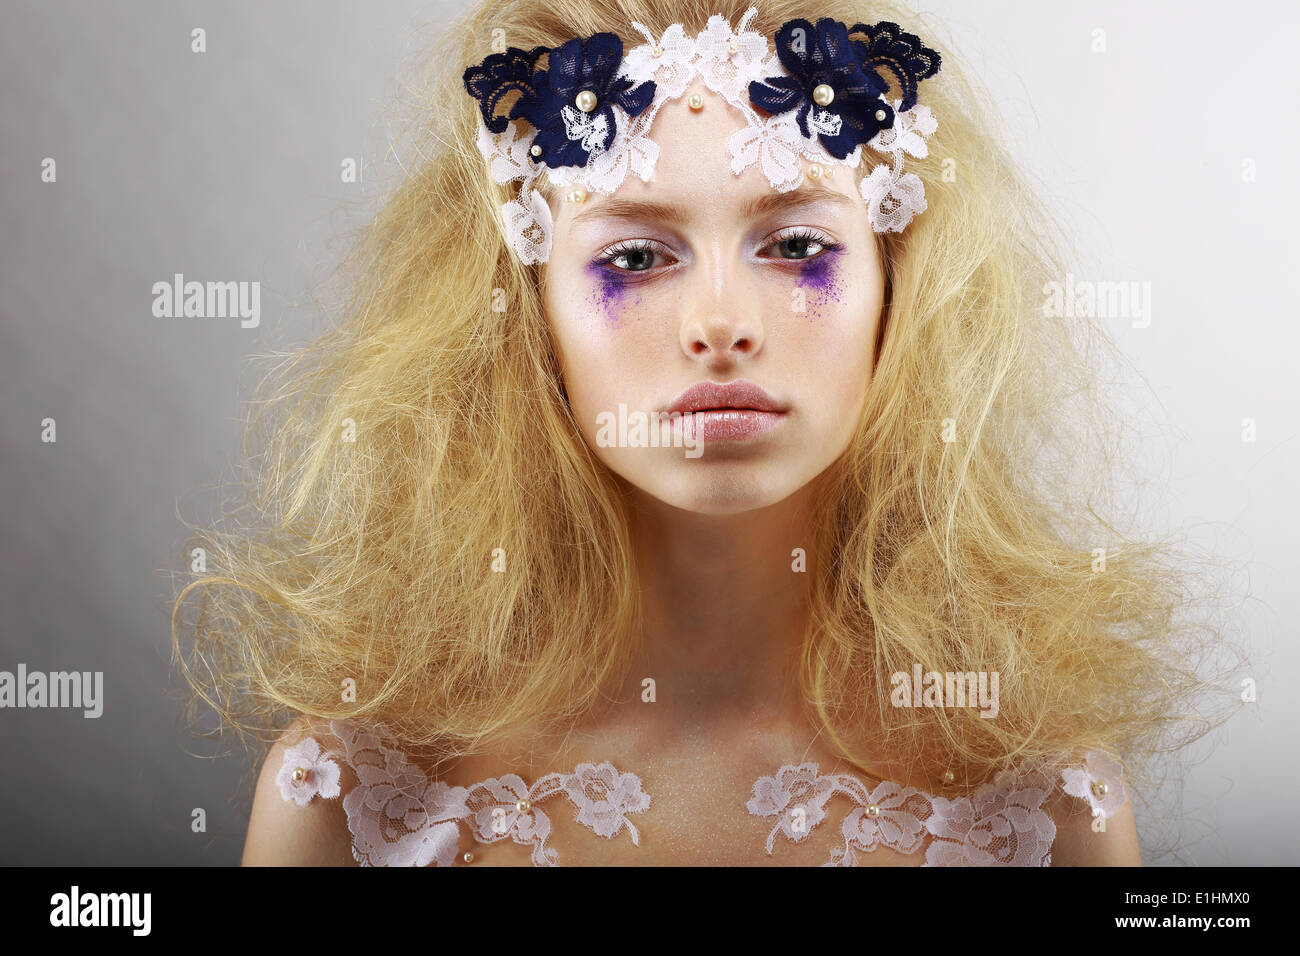 Fantasy. Portrait of Bright Blond with Unusual Makeup. Creativity - Stock Image